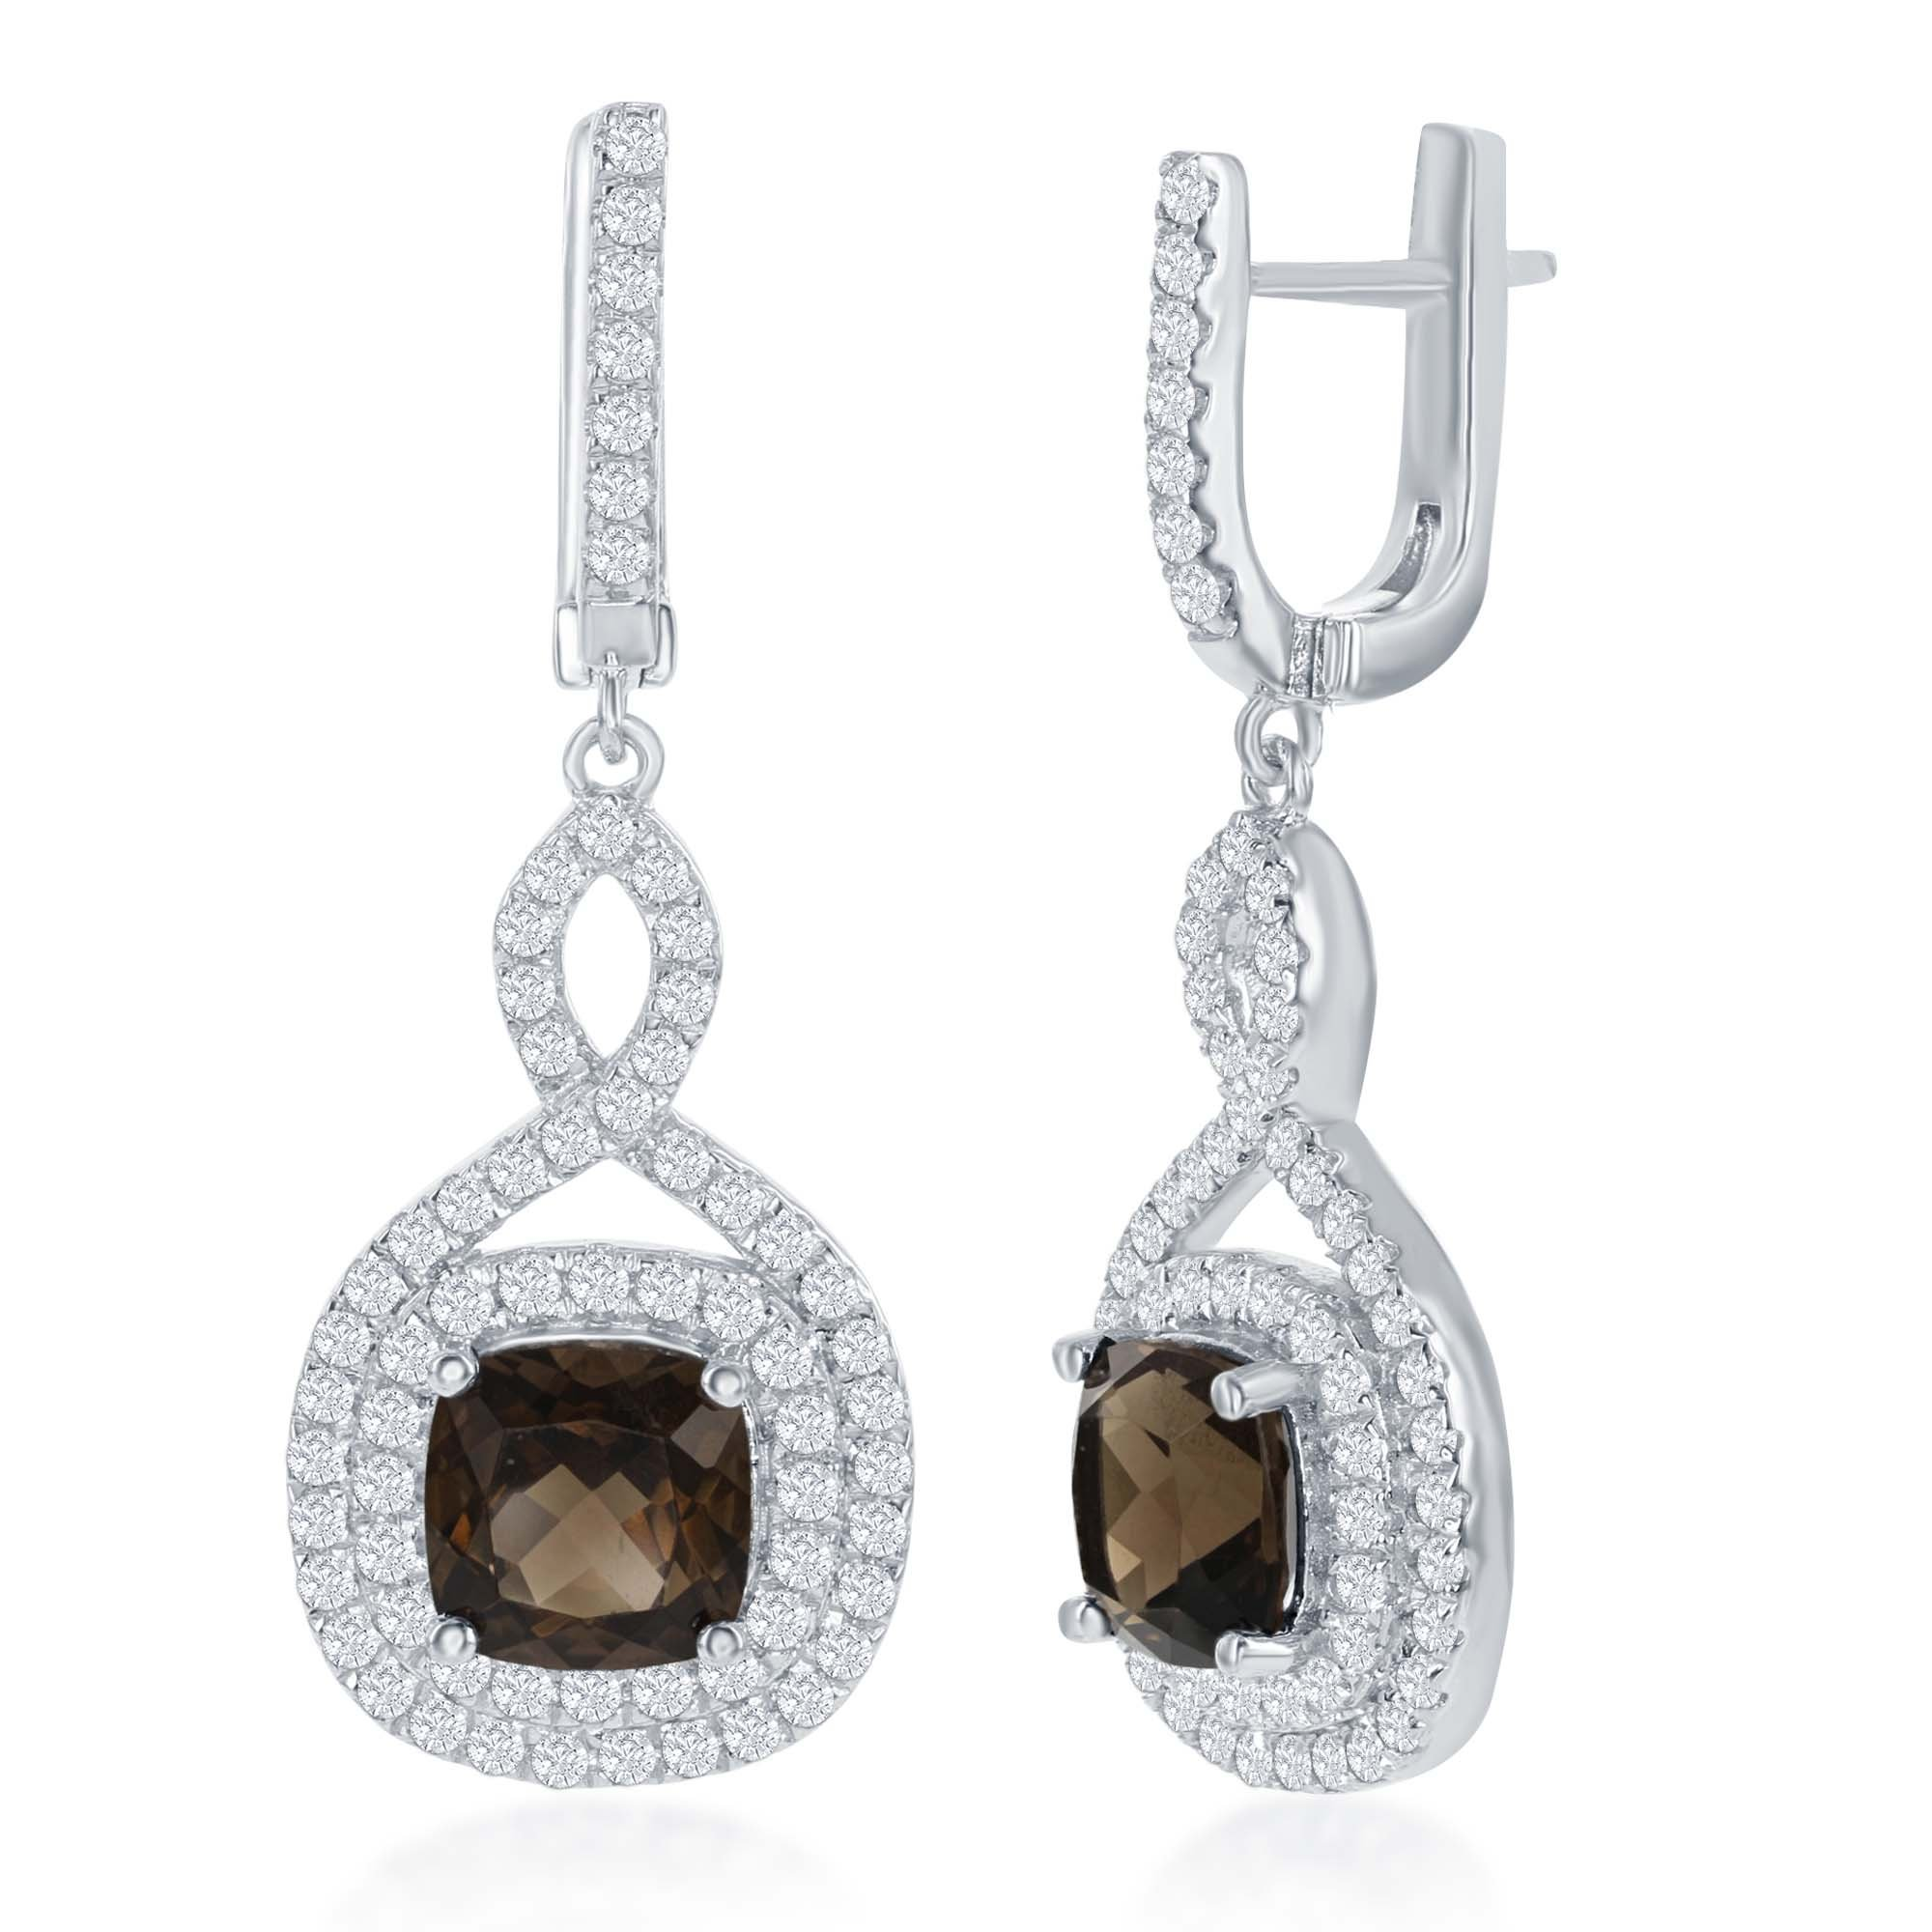 Sterling Silver High Polish Smoky Square Quartz Center with White Topaz Swirl & Border Earrings